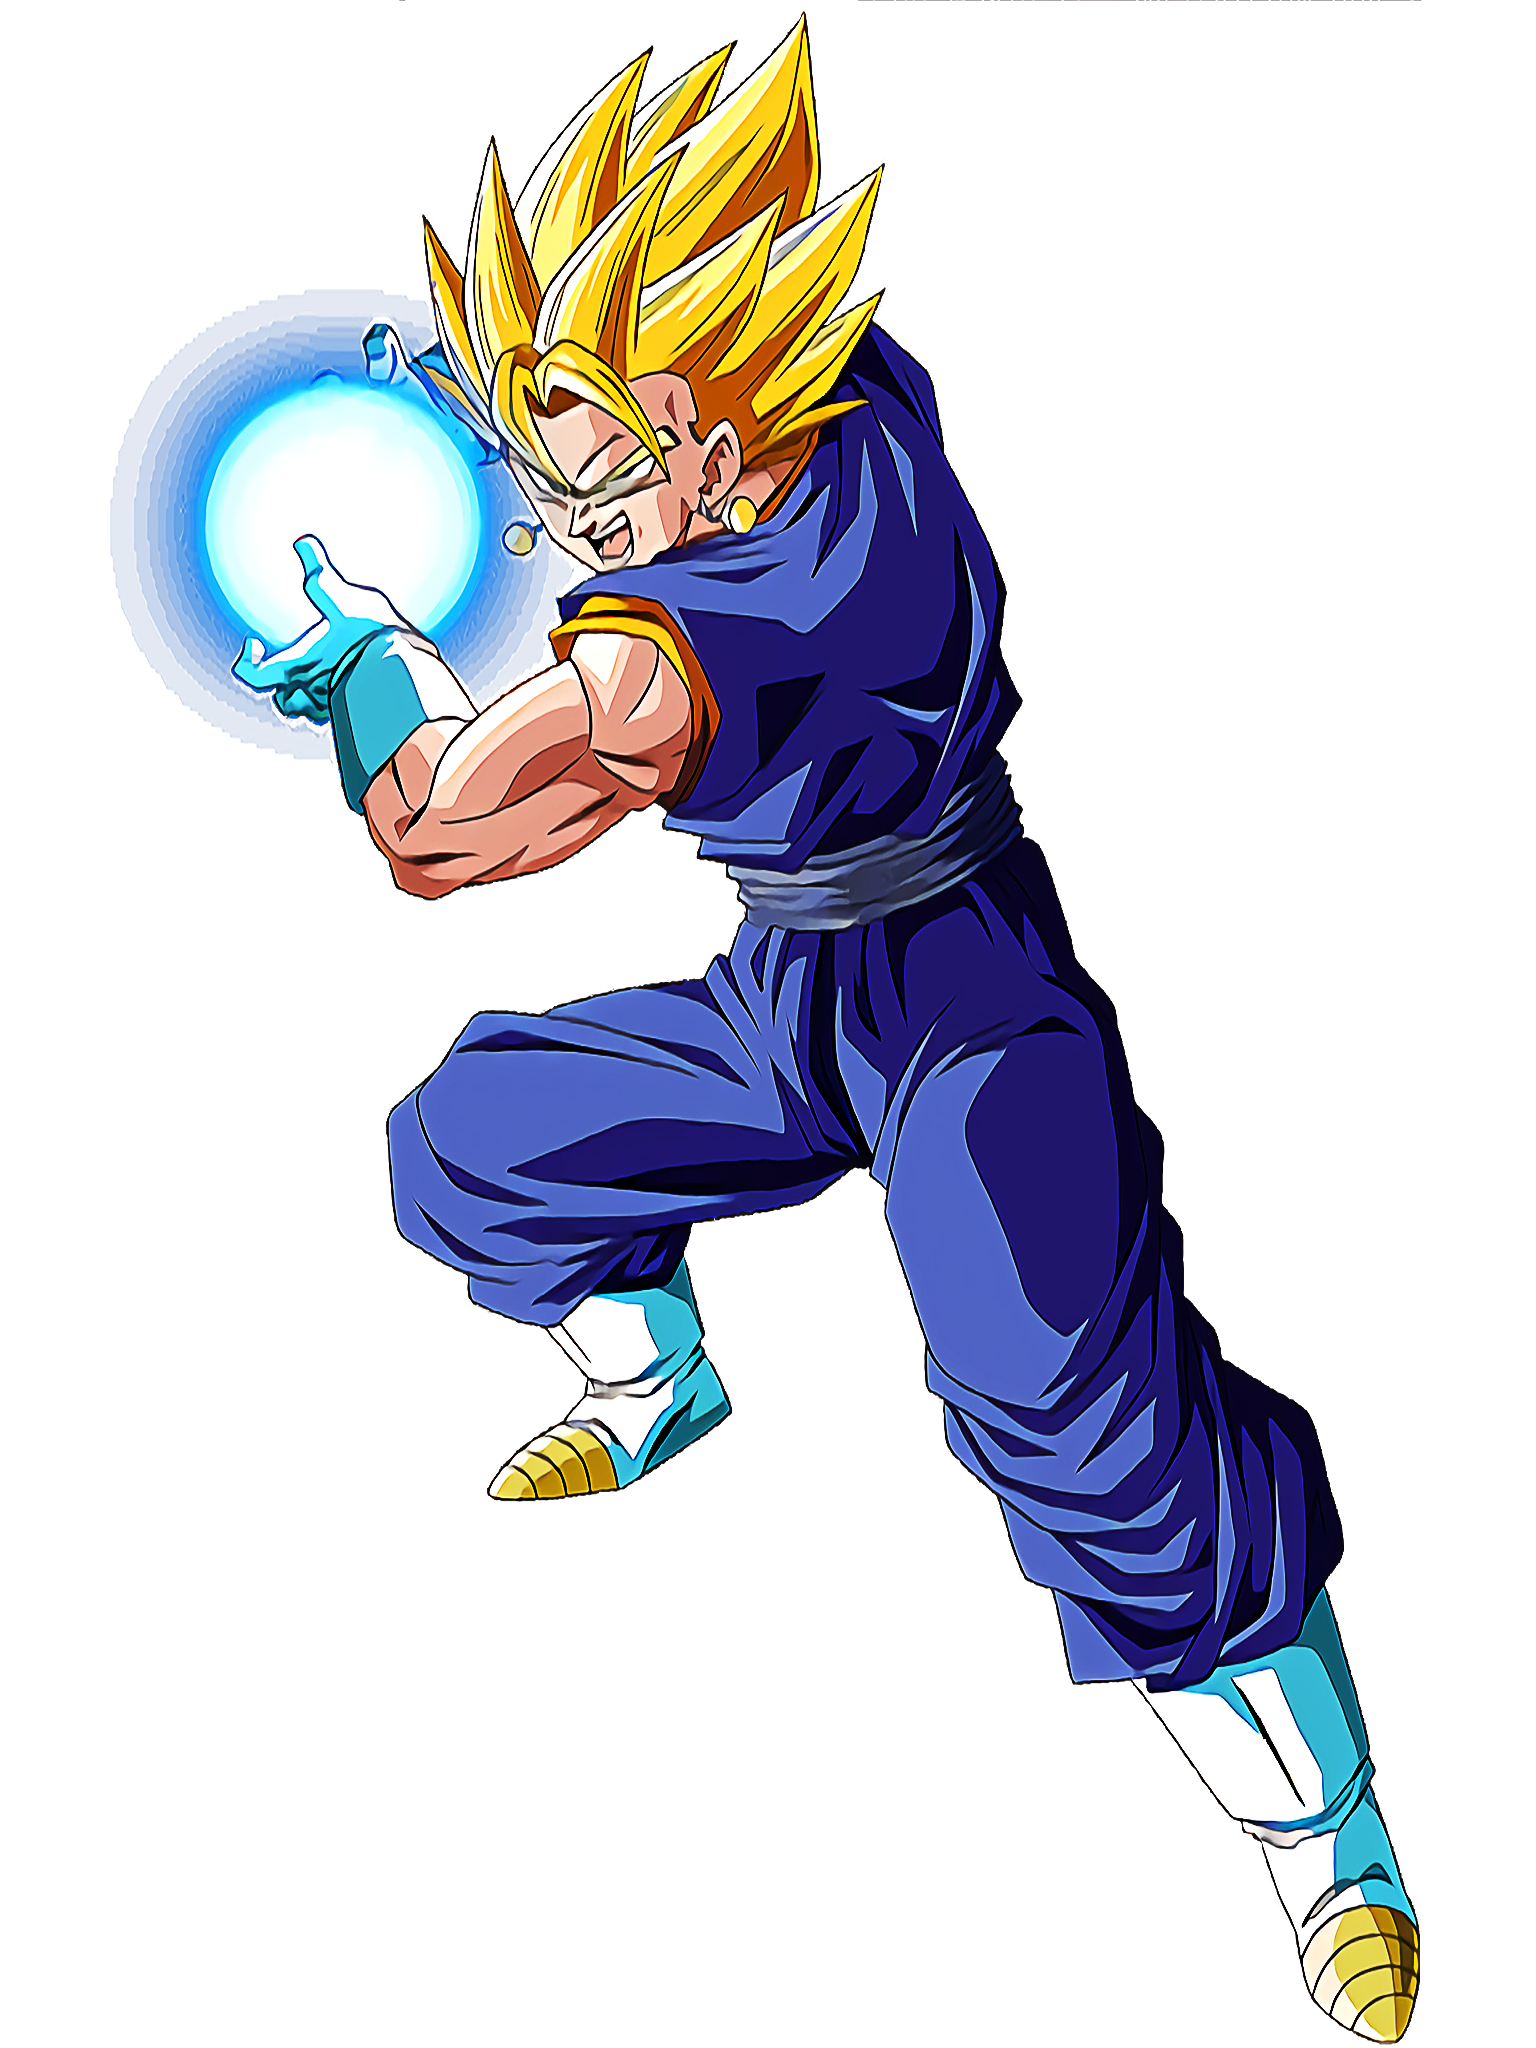 Super Vegito Asset 3 Render (Dragon Ball Z Dokkan Battle) .png